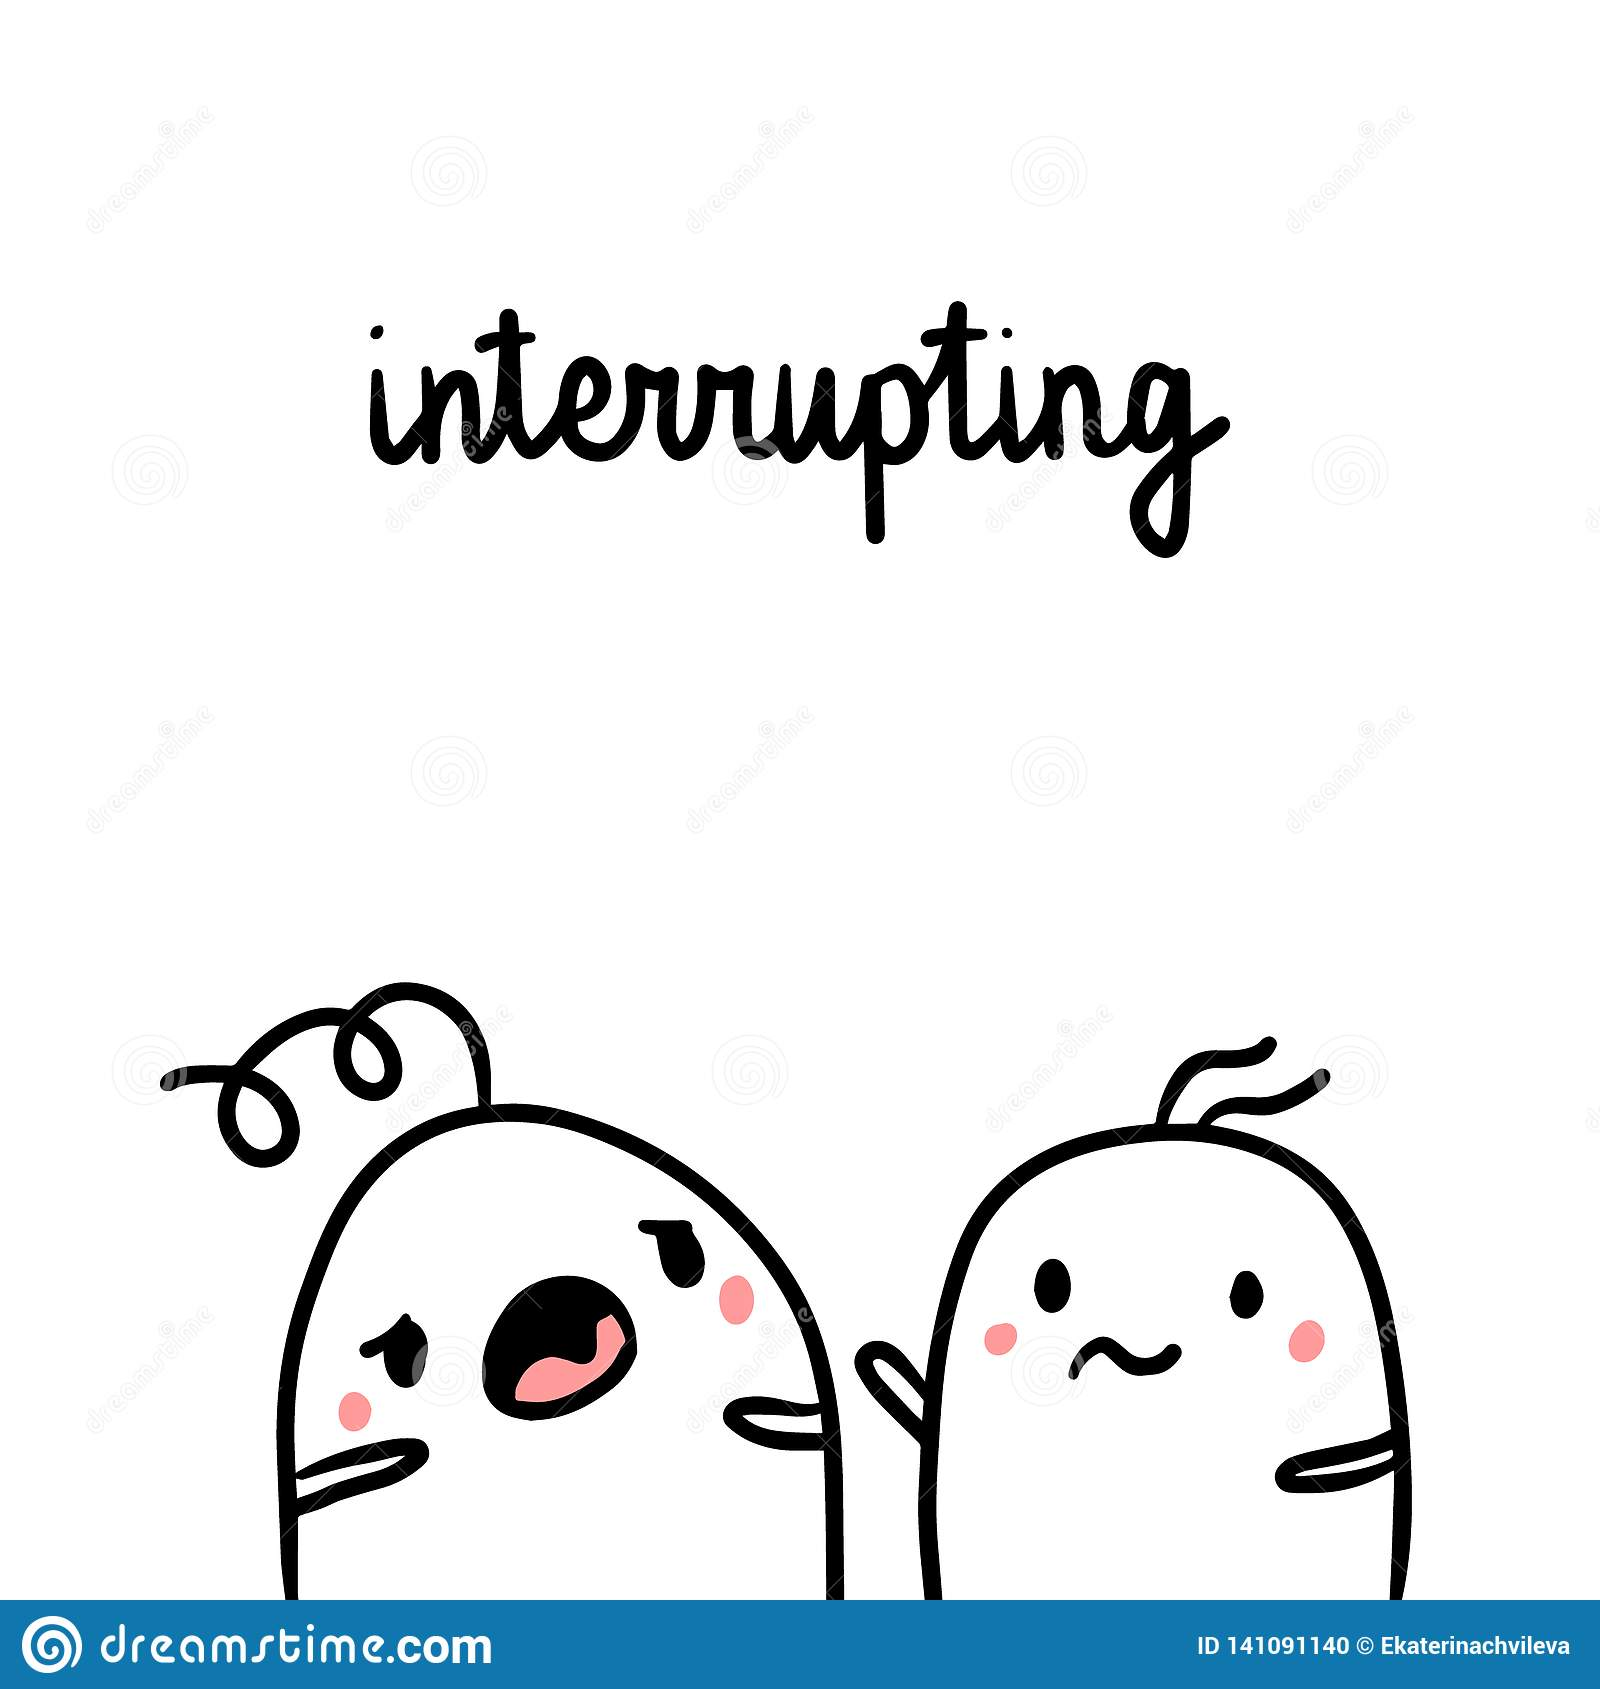 Interrupting while talking bad habit hand drawn illustration with cute marshmallows